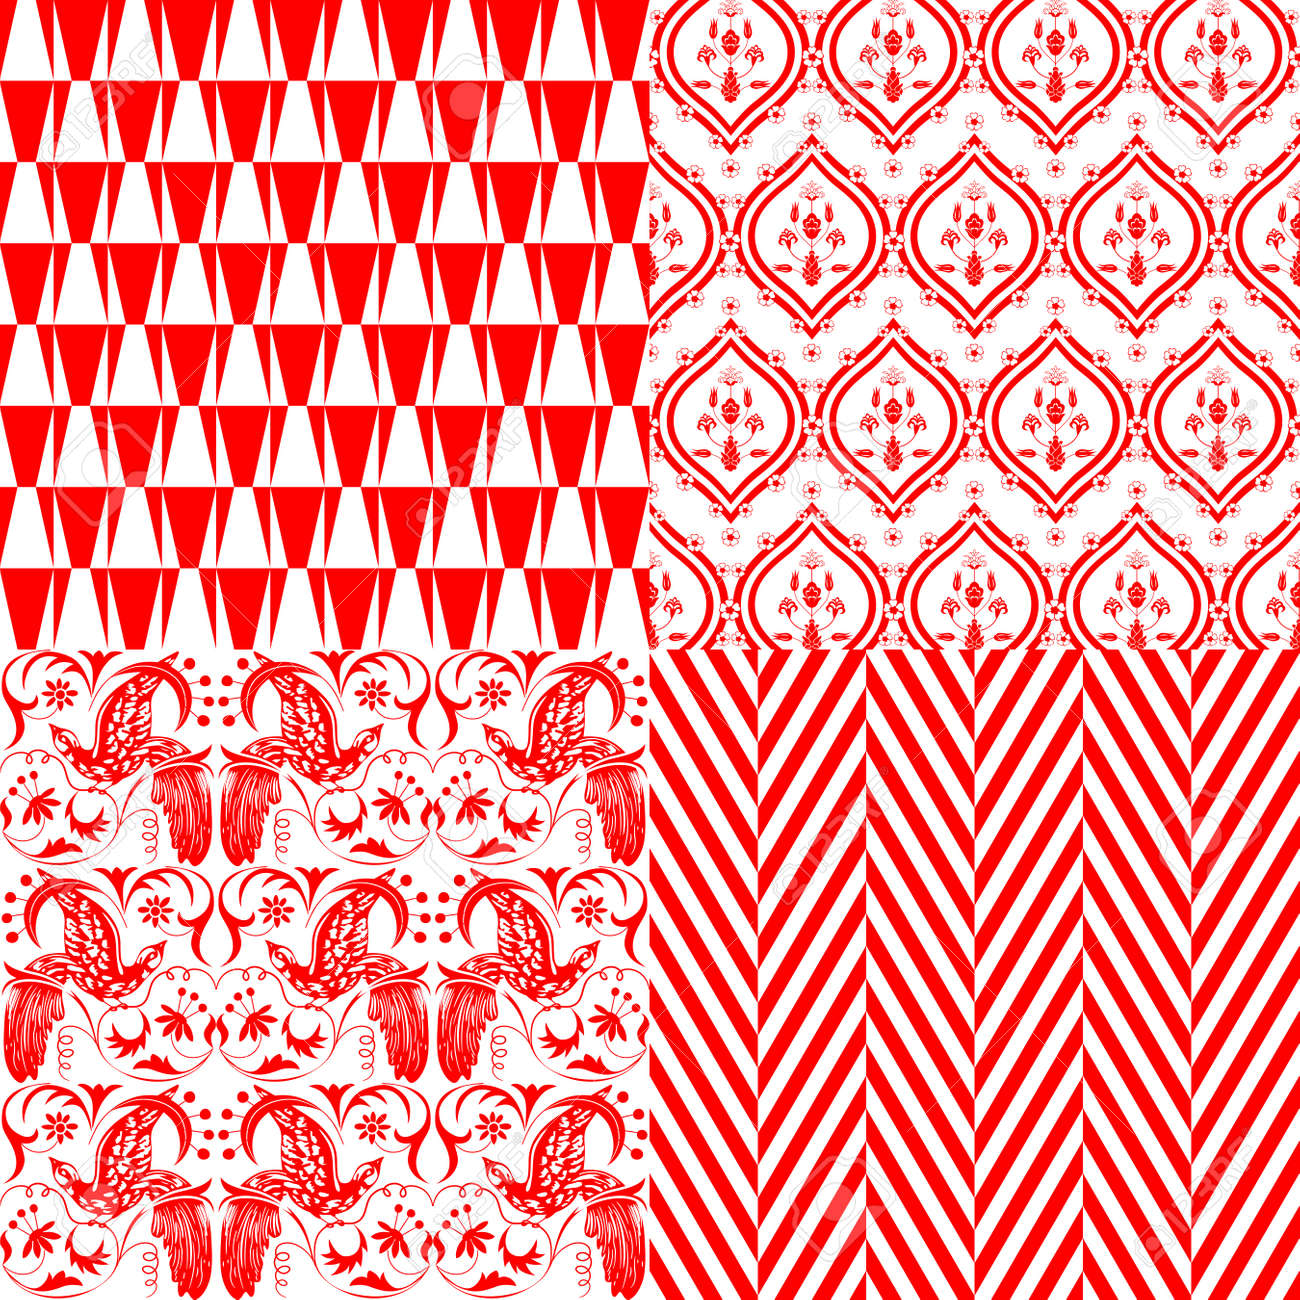 Red and white repeating patterns Stock Vector - 15298240